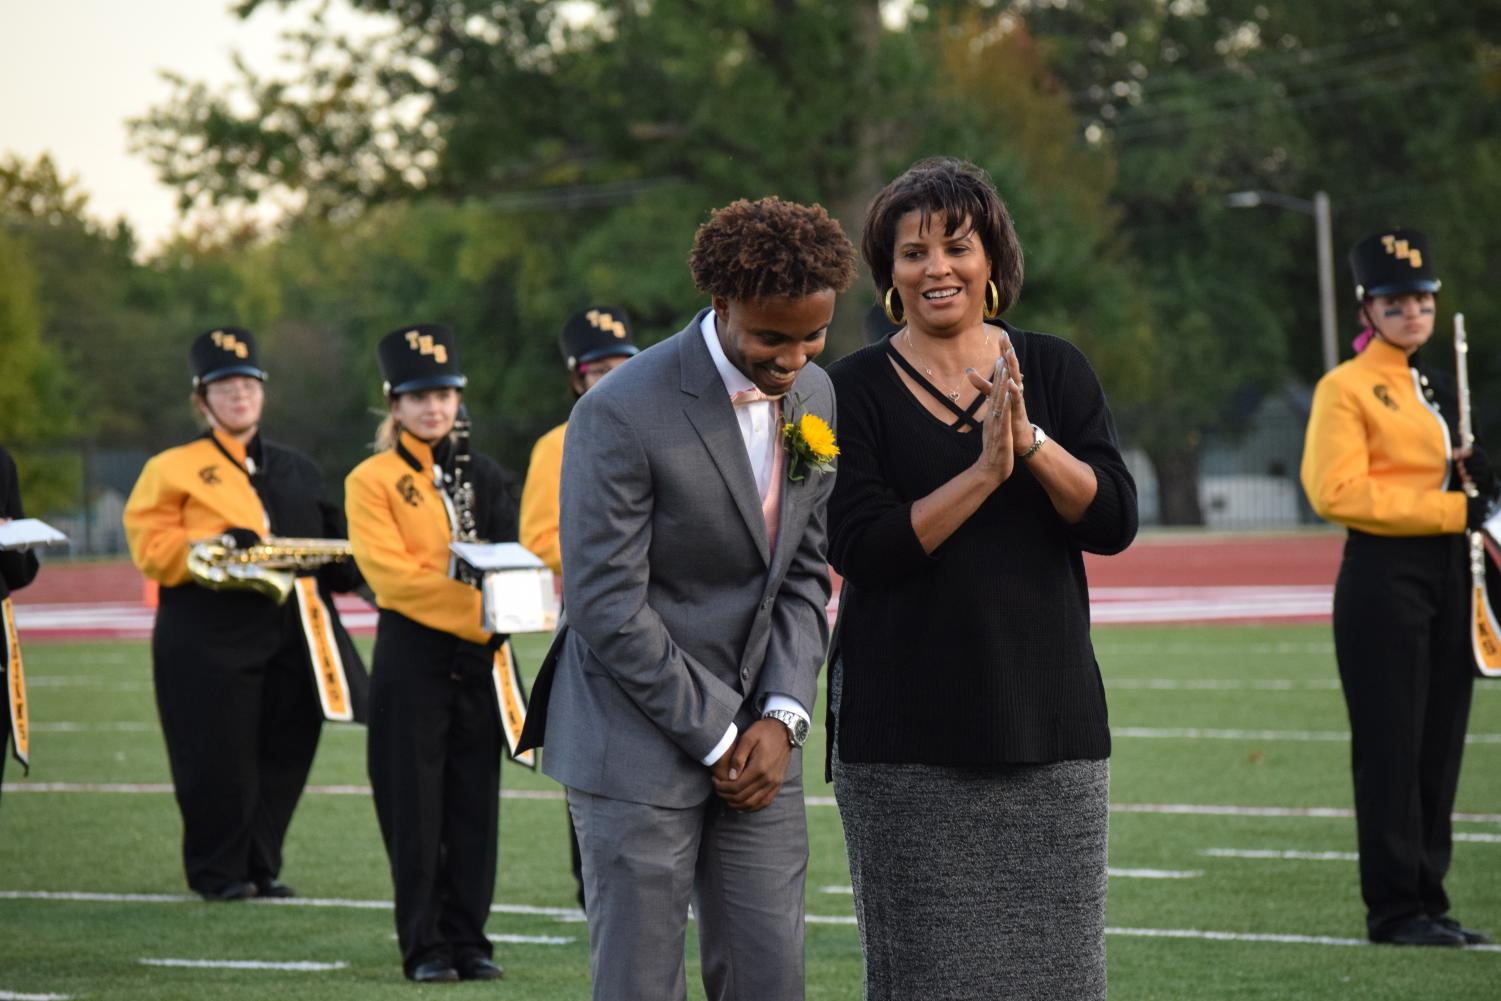 Homecoming+King%2C+Philip+Canady%2C+smiles+as+his+name+is+announced.